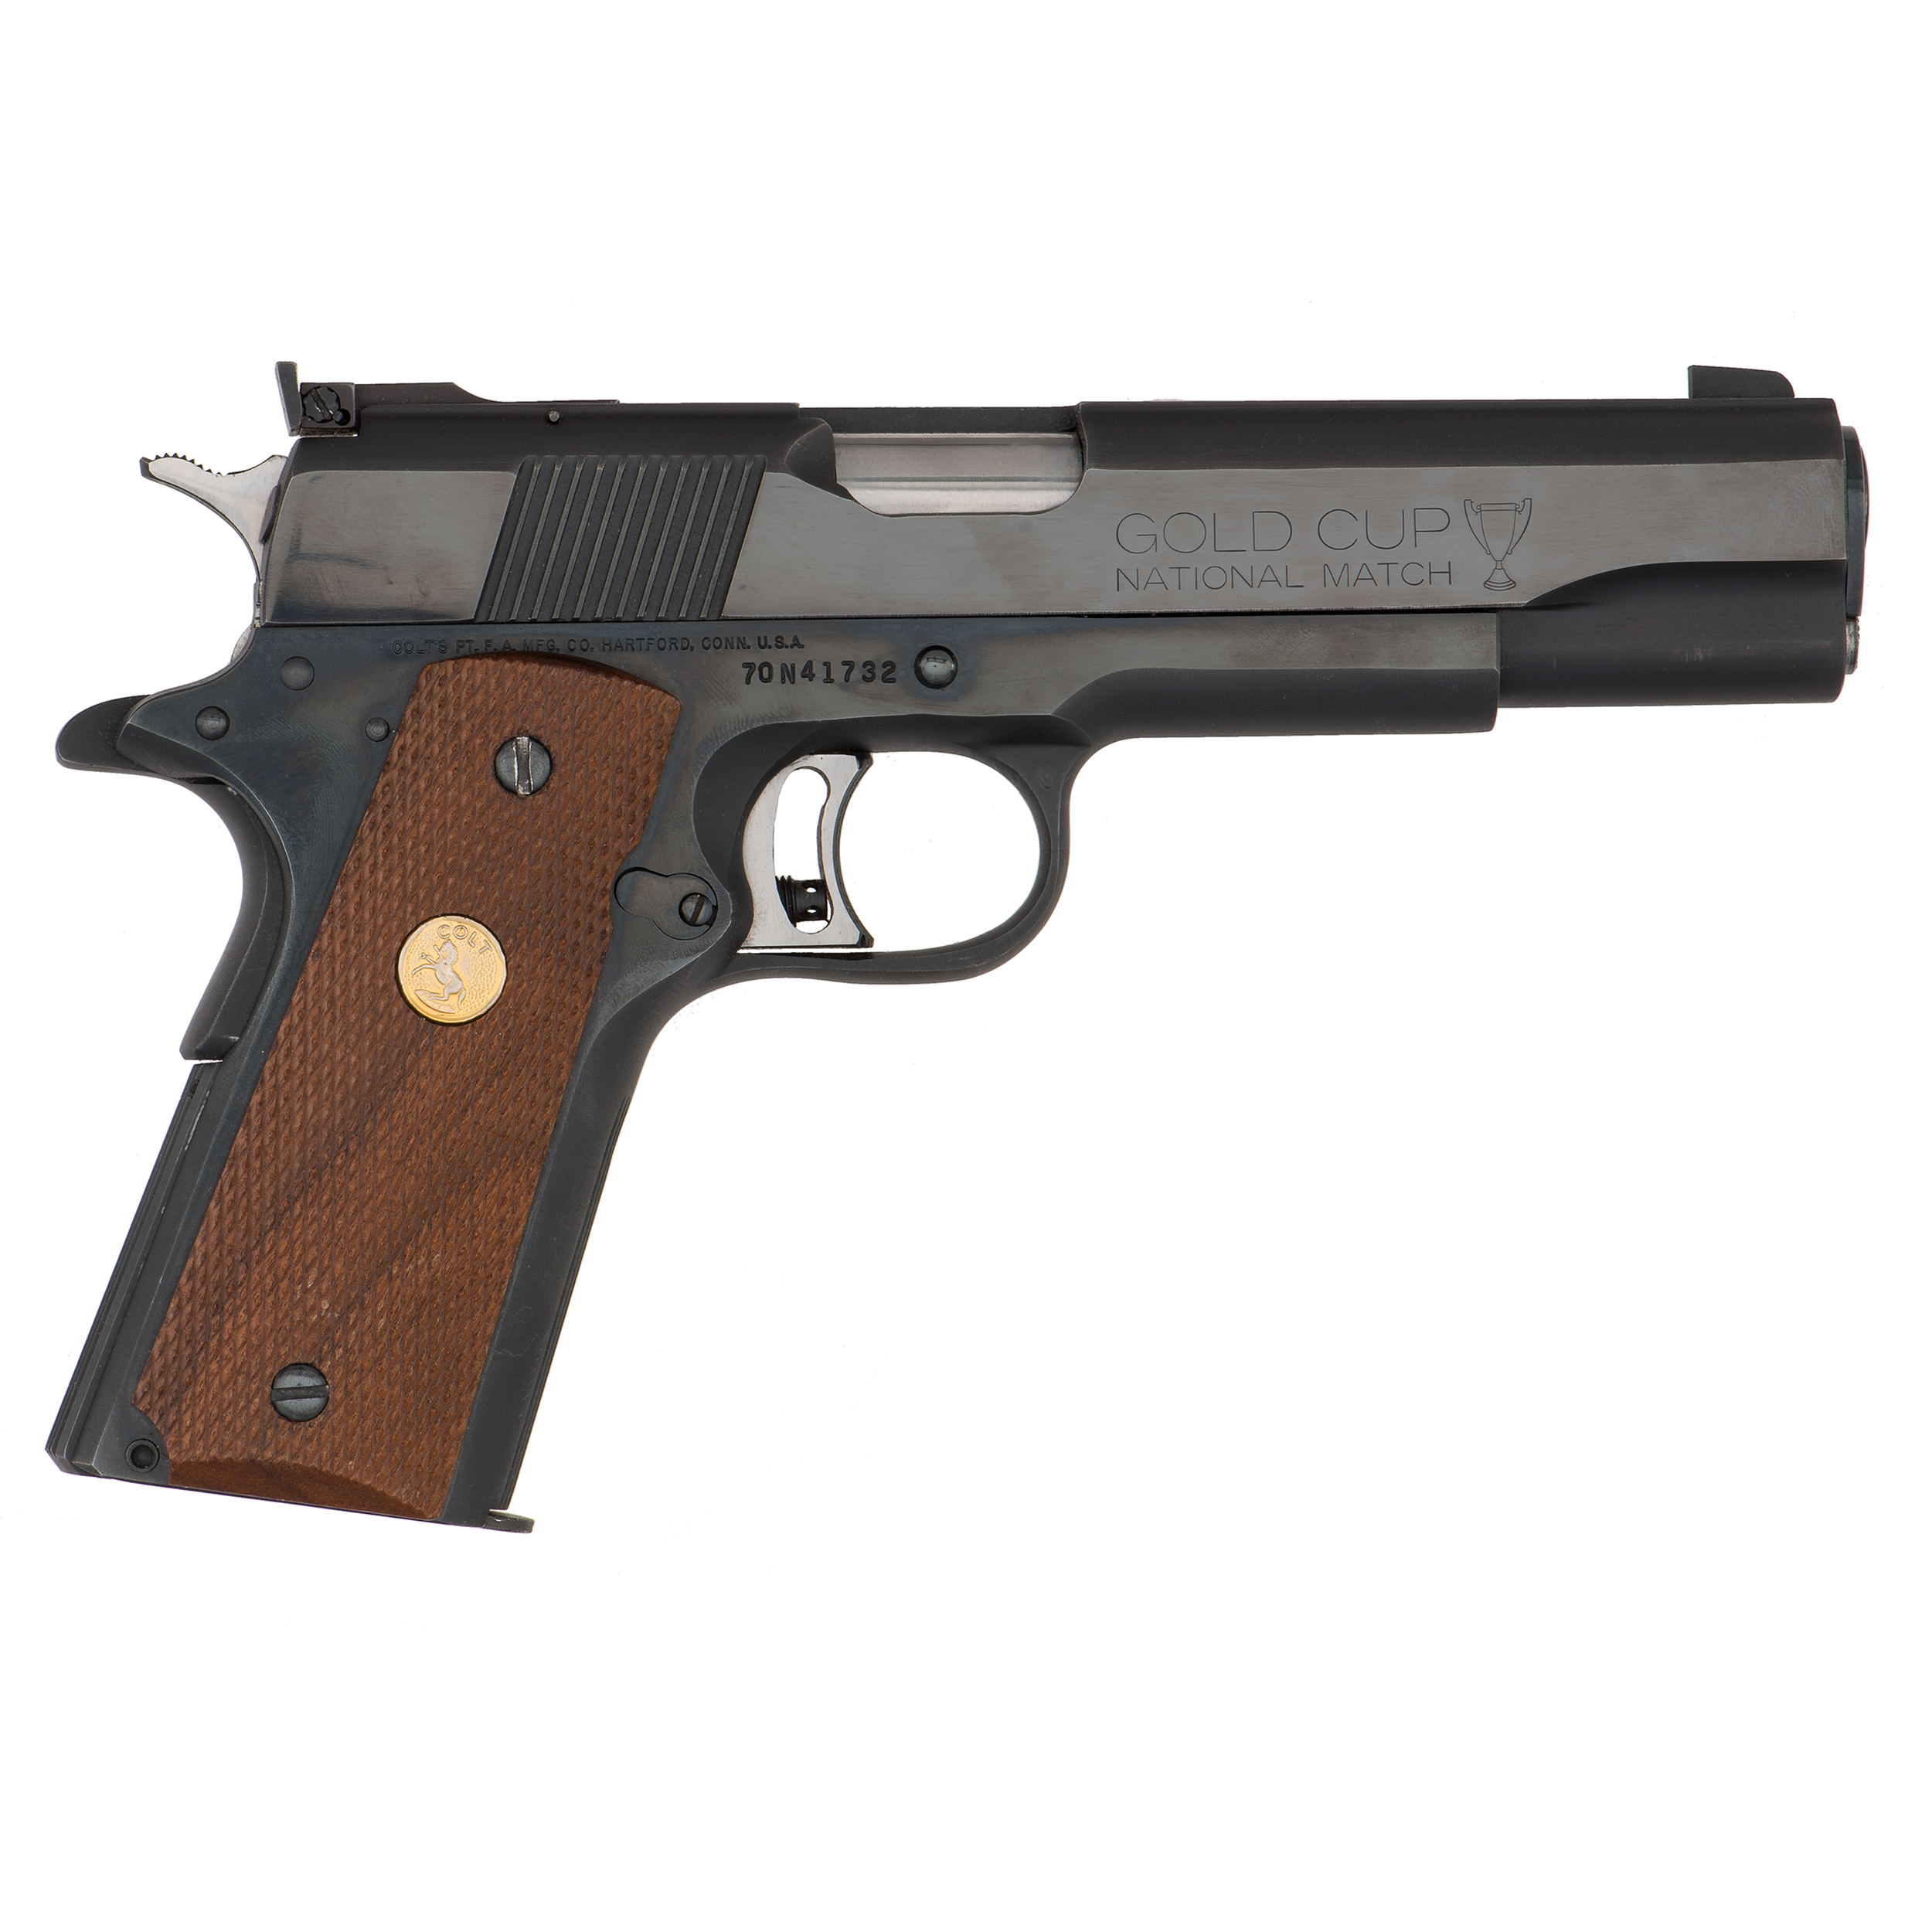 Colt Mark Iv Series 70 Gold Cup National Match Pistol Cowan S Auction House The Midwest S Most Trusted Auction House Antiques Fine Art Art Appraisals